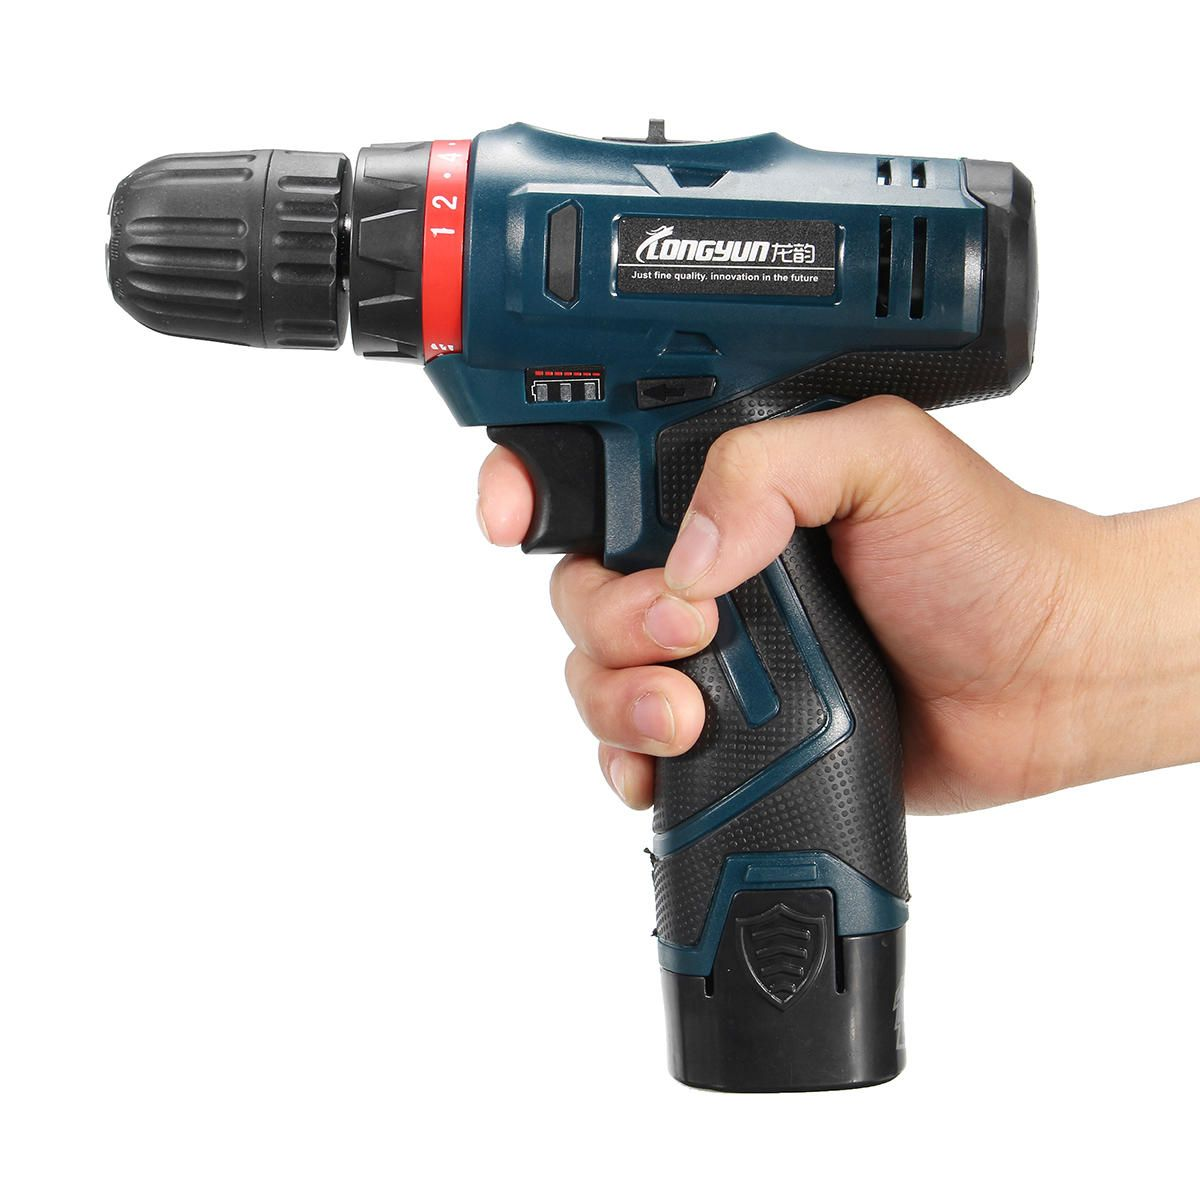 NBU US$58.71 Lomvum 16.8V Electric Cordless Hammer Drill Driver Waterproof Duplex Bearing Auto Lock